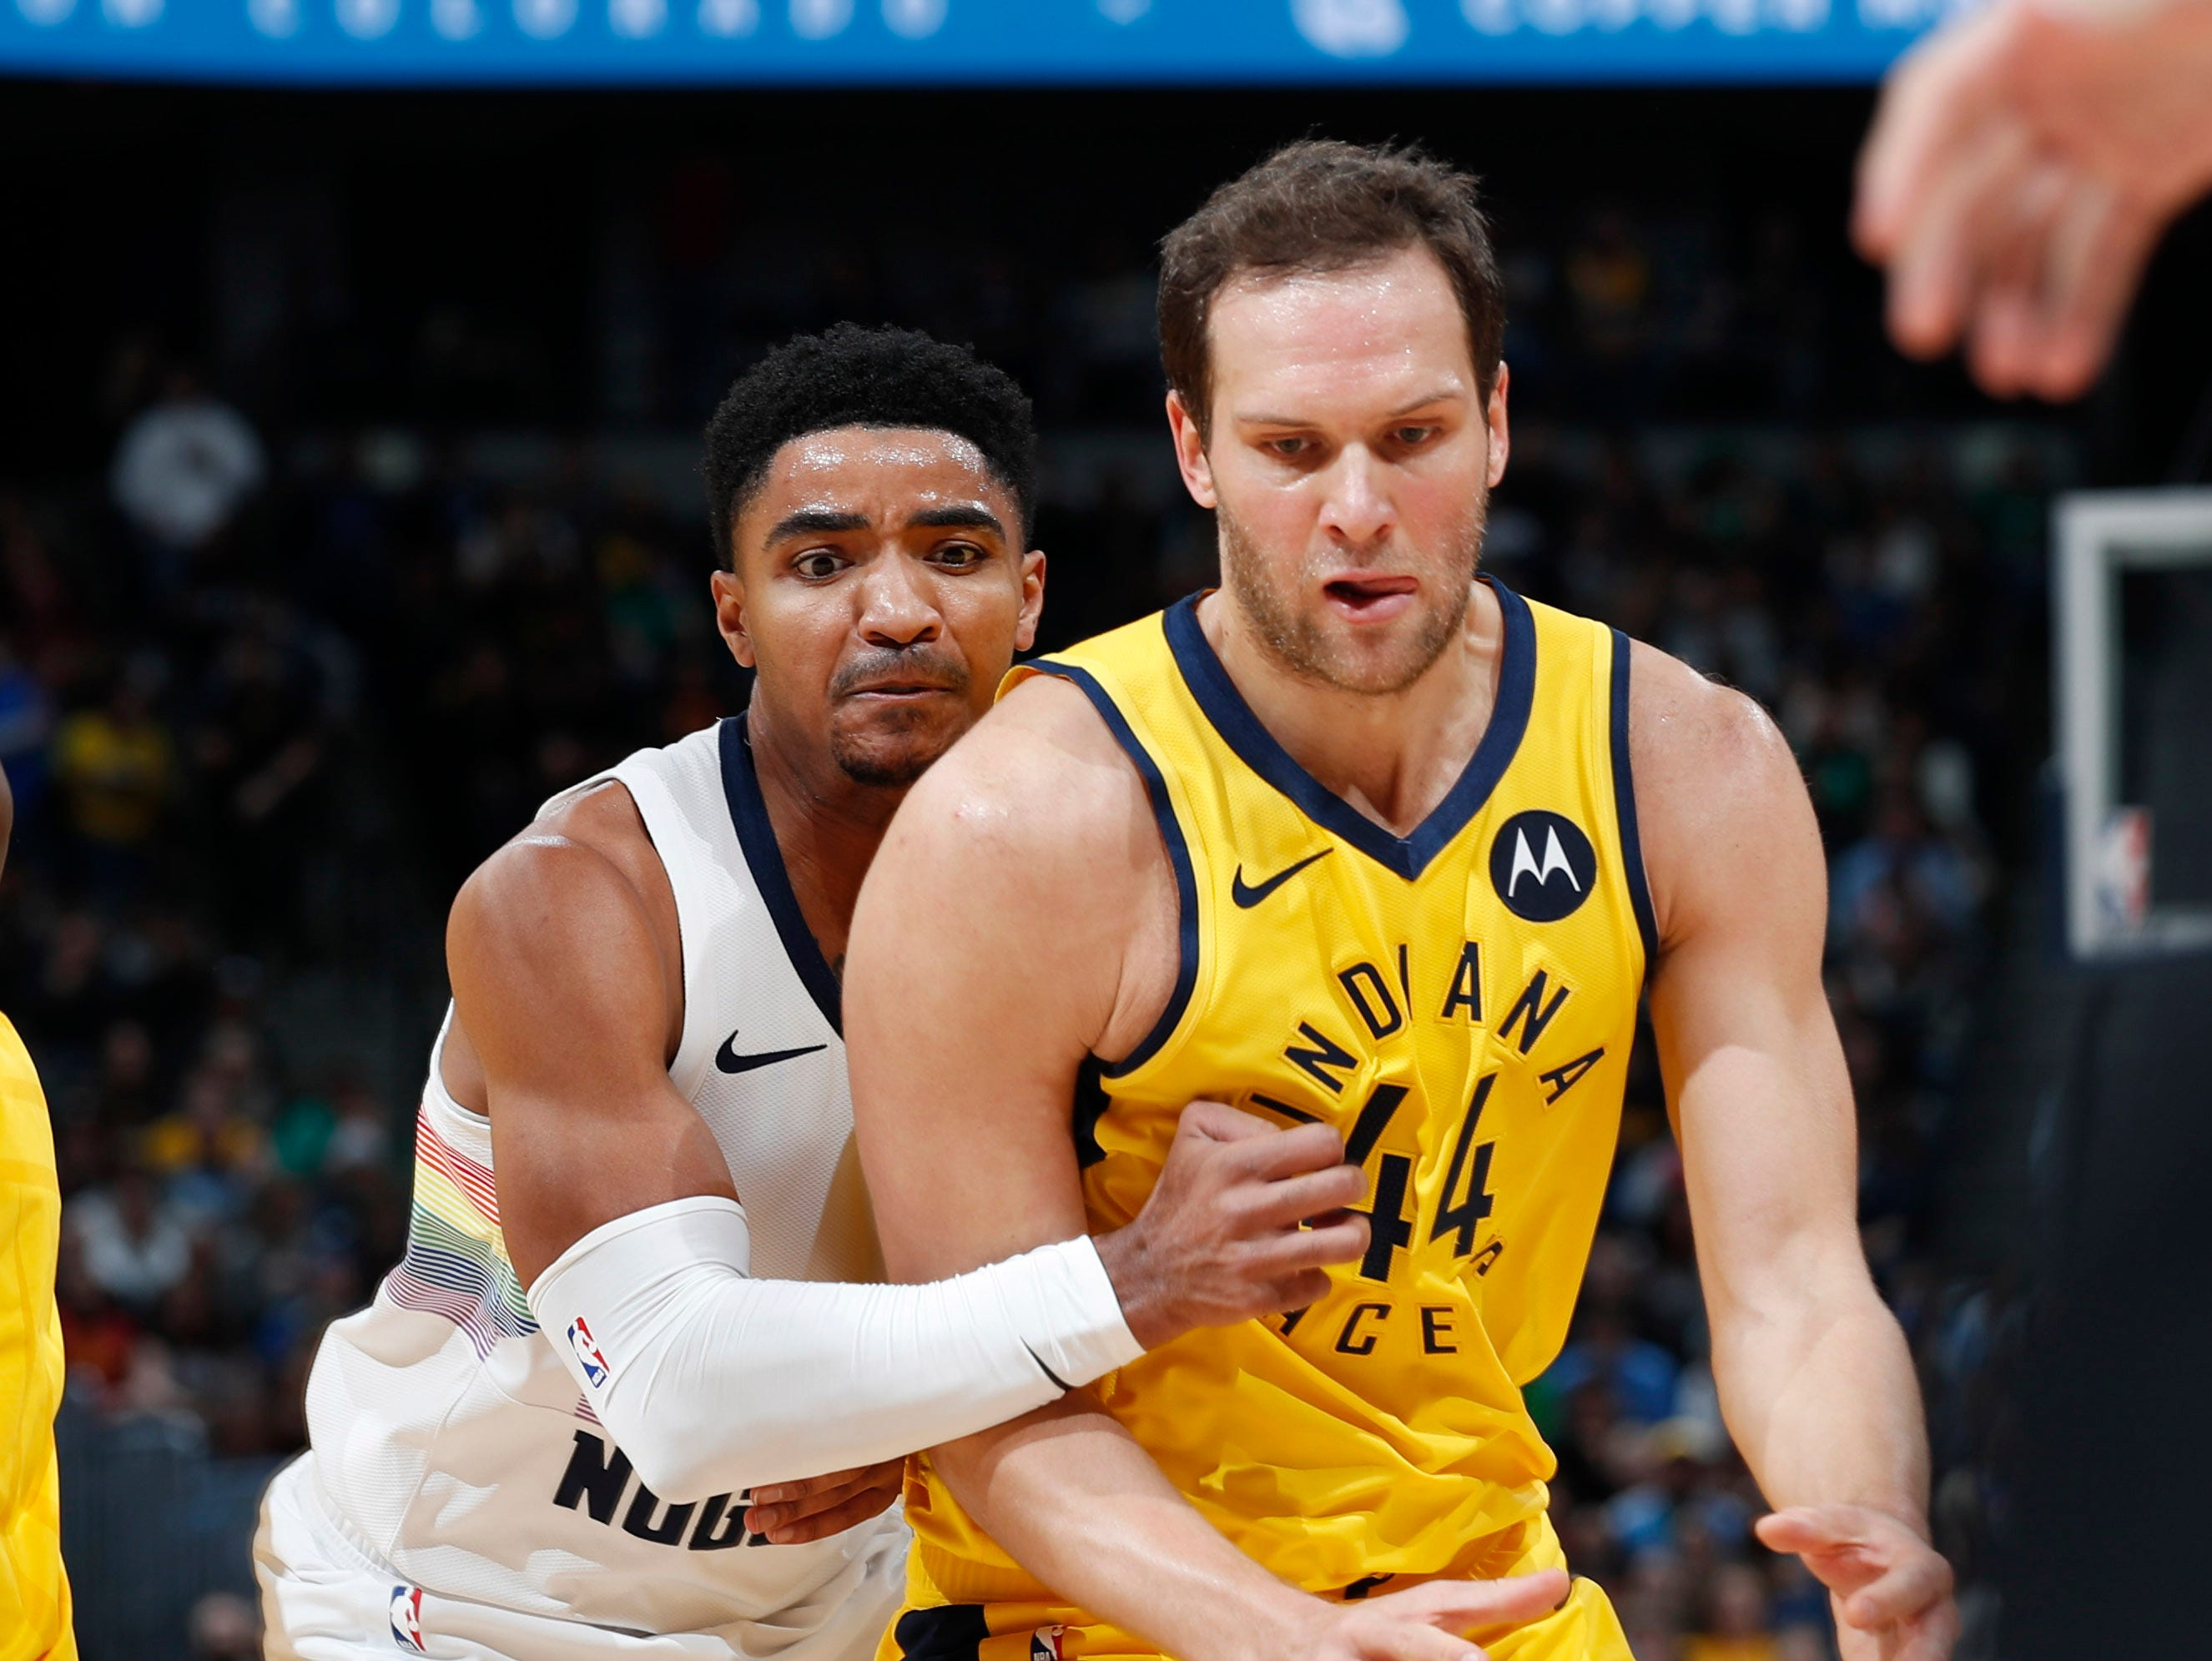 Indiana Pacers forward Bojan Bogdanovic, front, and Denver Nuggets guard Gary Harris watch the ball get away during the first half of an NBA basketball game Saturday, March 16, 2019, in Denver. (AP Photo/David Zalubowski)